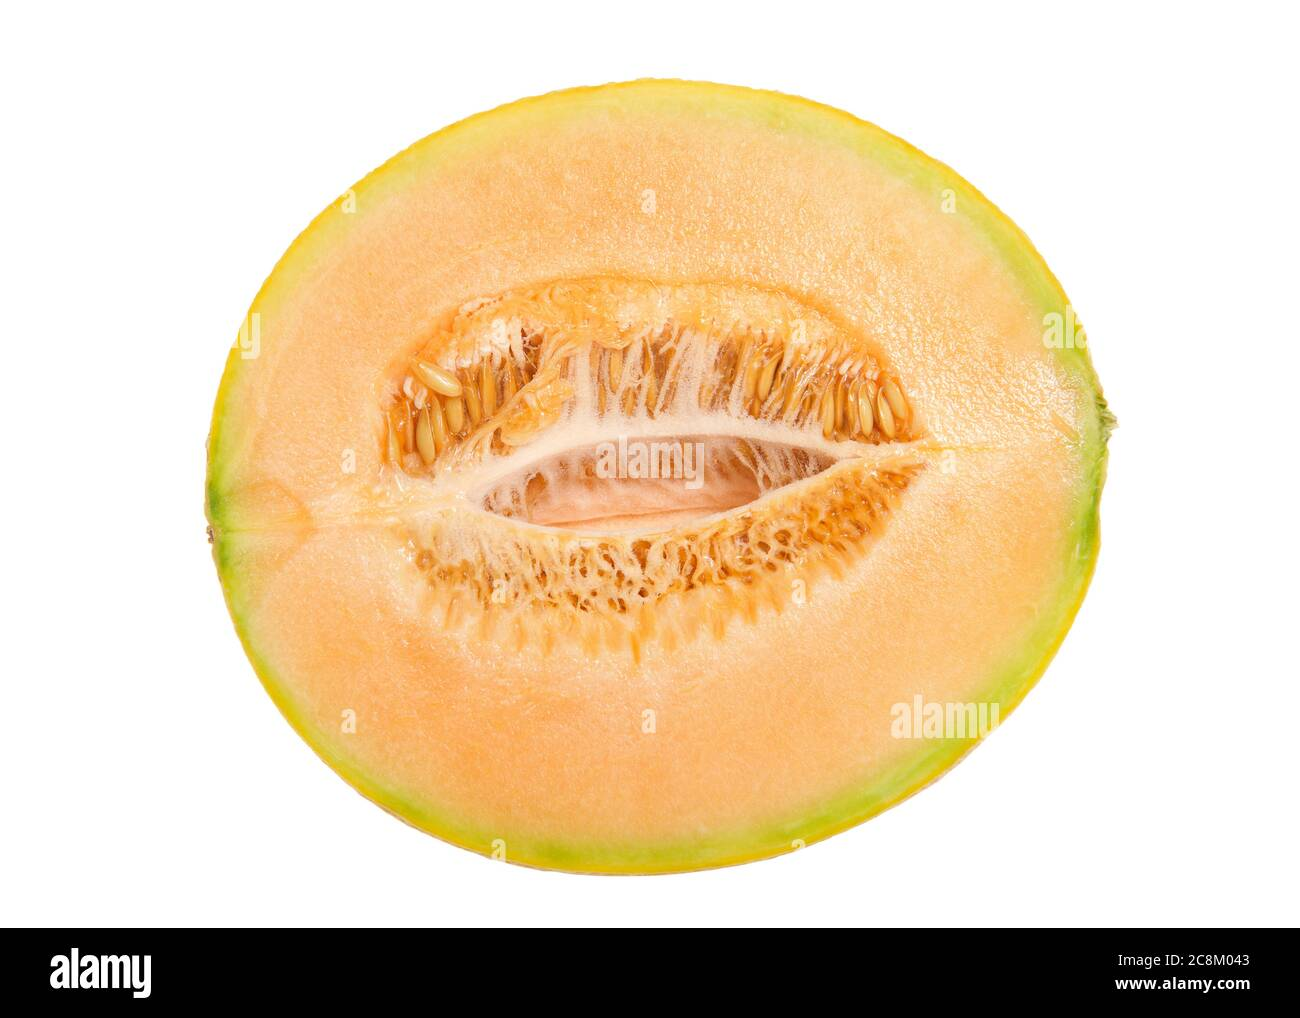 Close Up On Cross Section Of Cantaloupe Cut Lengthwise Showing Seeds Isolated On White Stock Photo Alamy Here you can explore hq cantaloupe transparent illustrations, icons and clipart with filter setting like polish your personal project or design with these cantaloupe transparent png images, make it even. alamy